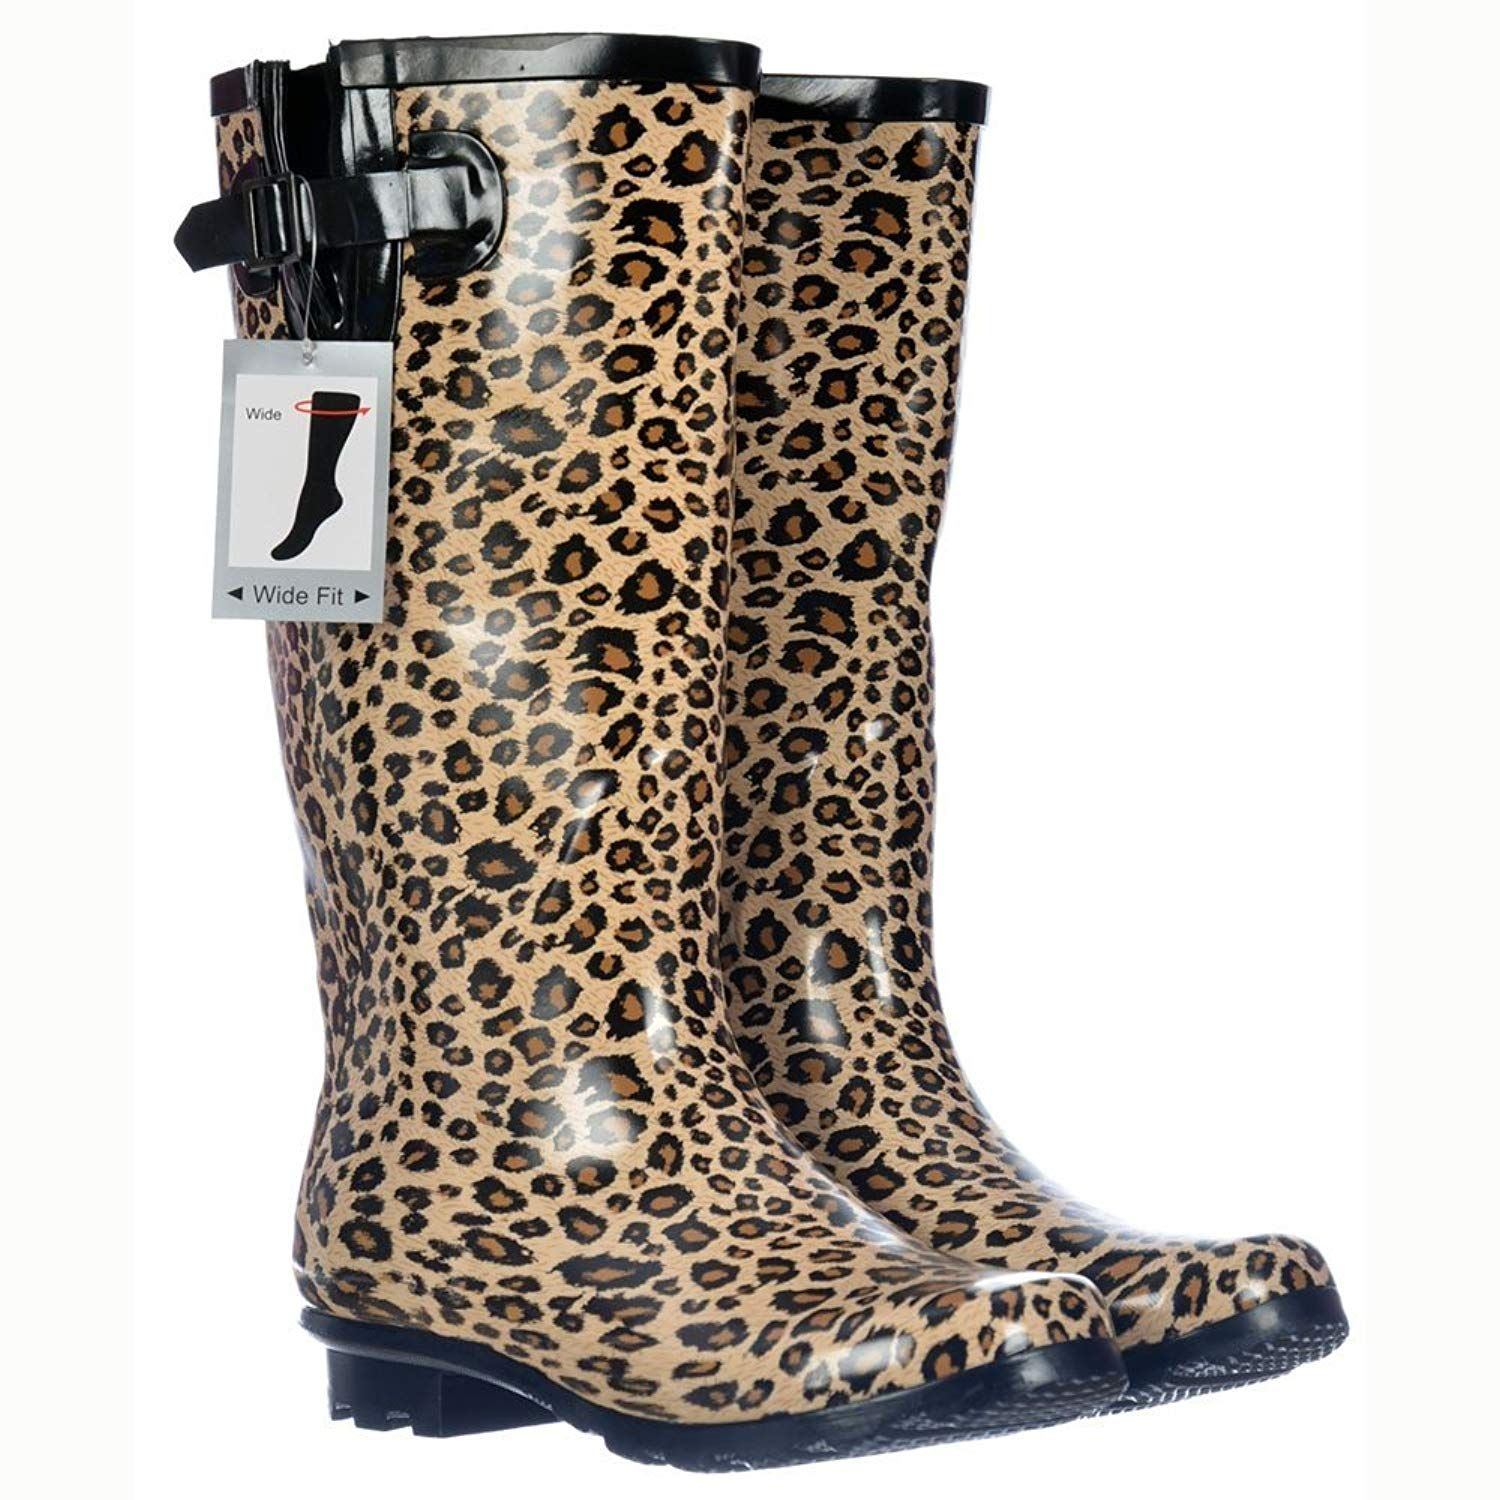 015c8a3bff1 Onlineshoe Women s Wide Calf Festival Rain Boots    You can get more  details by clicking on the image. (This is an affiliate link)